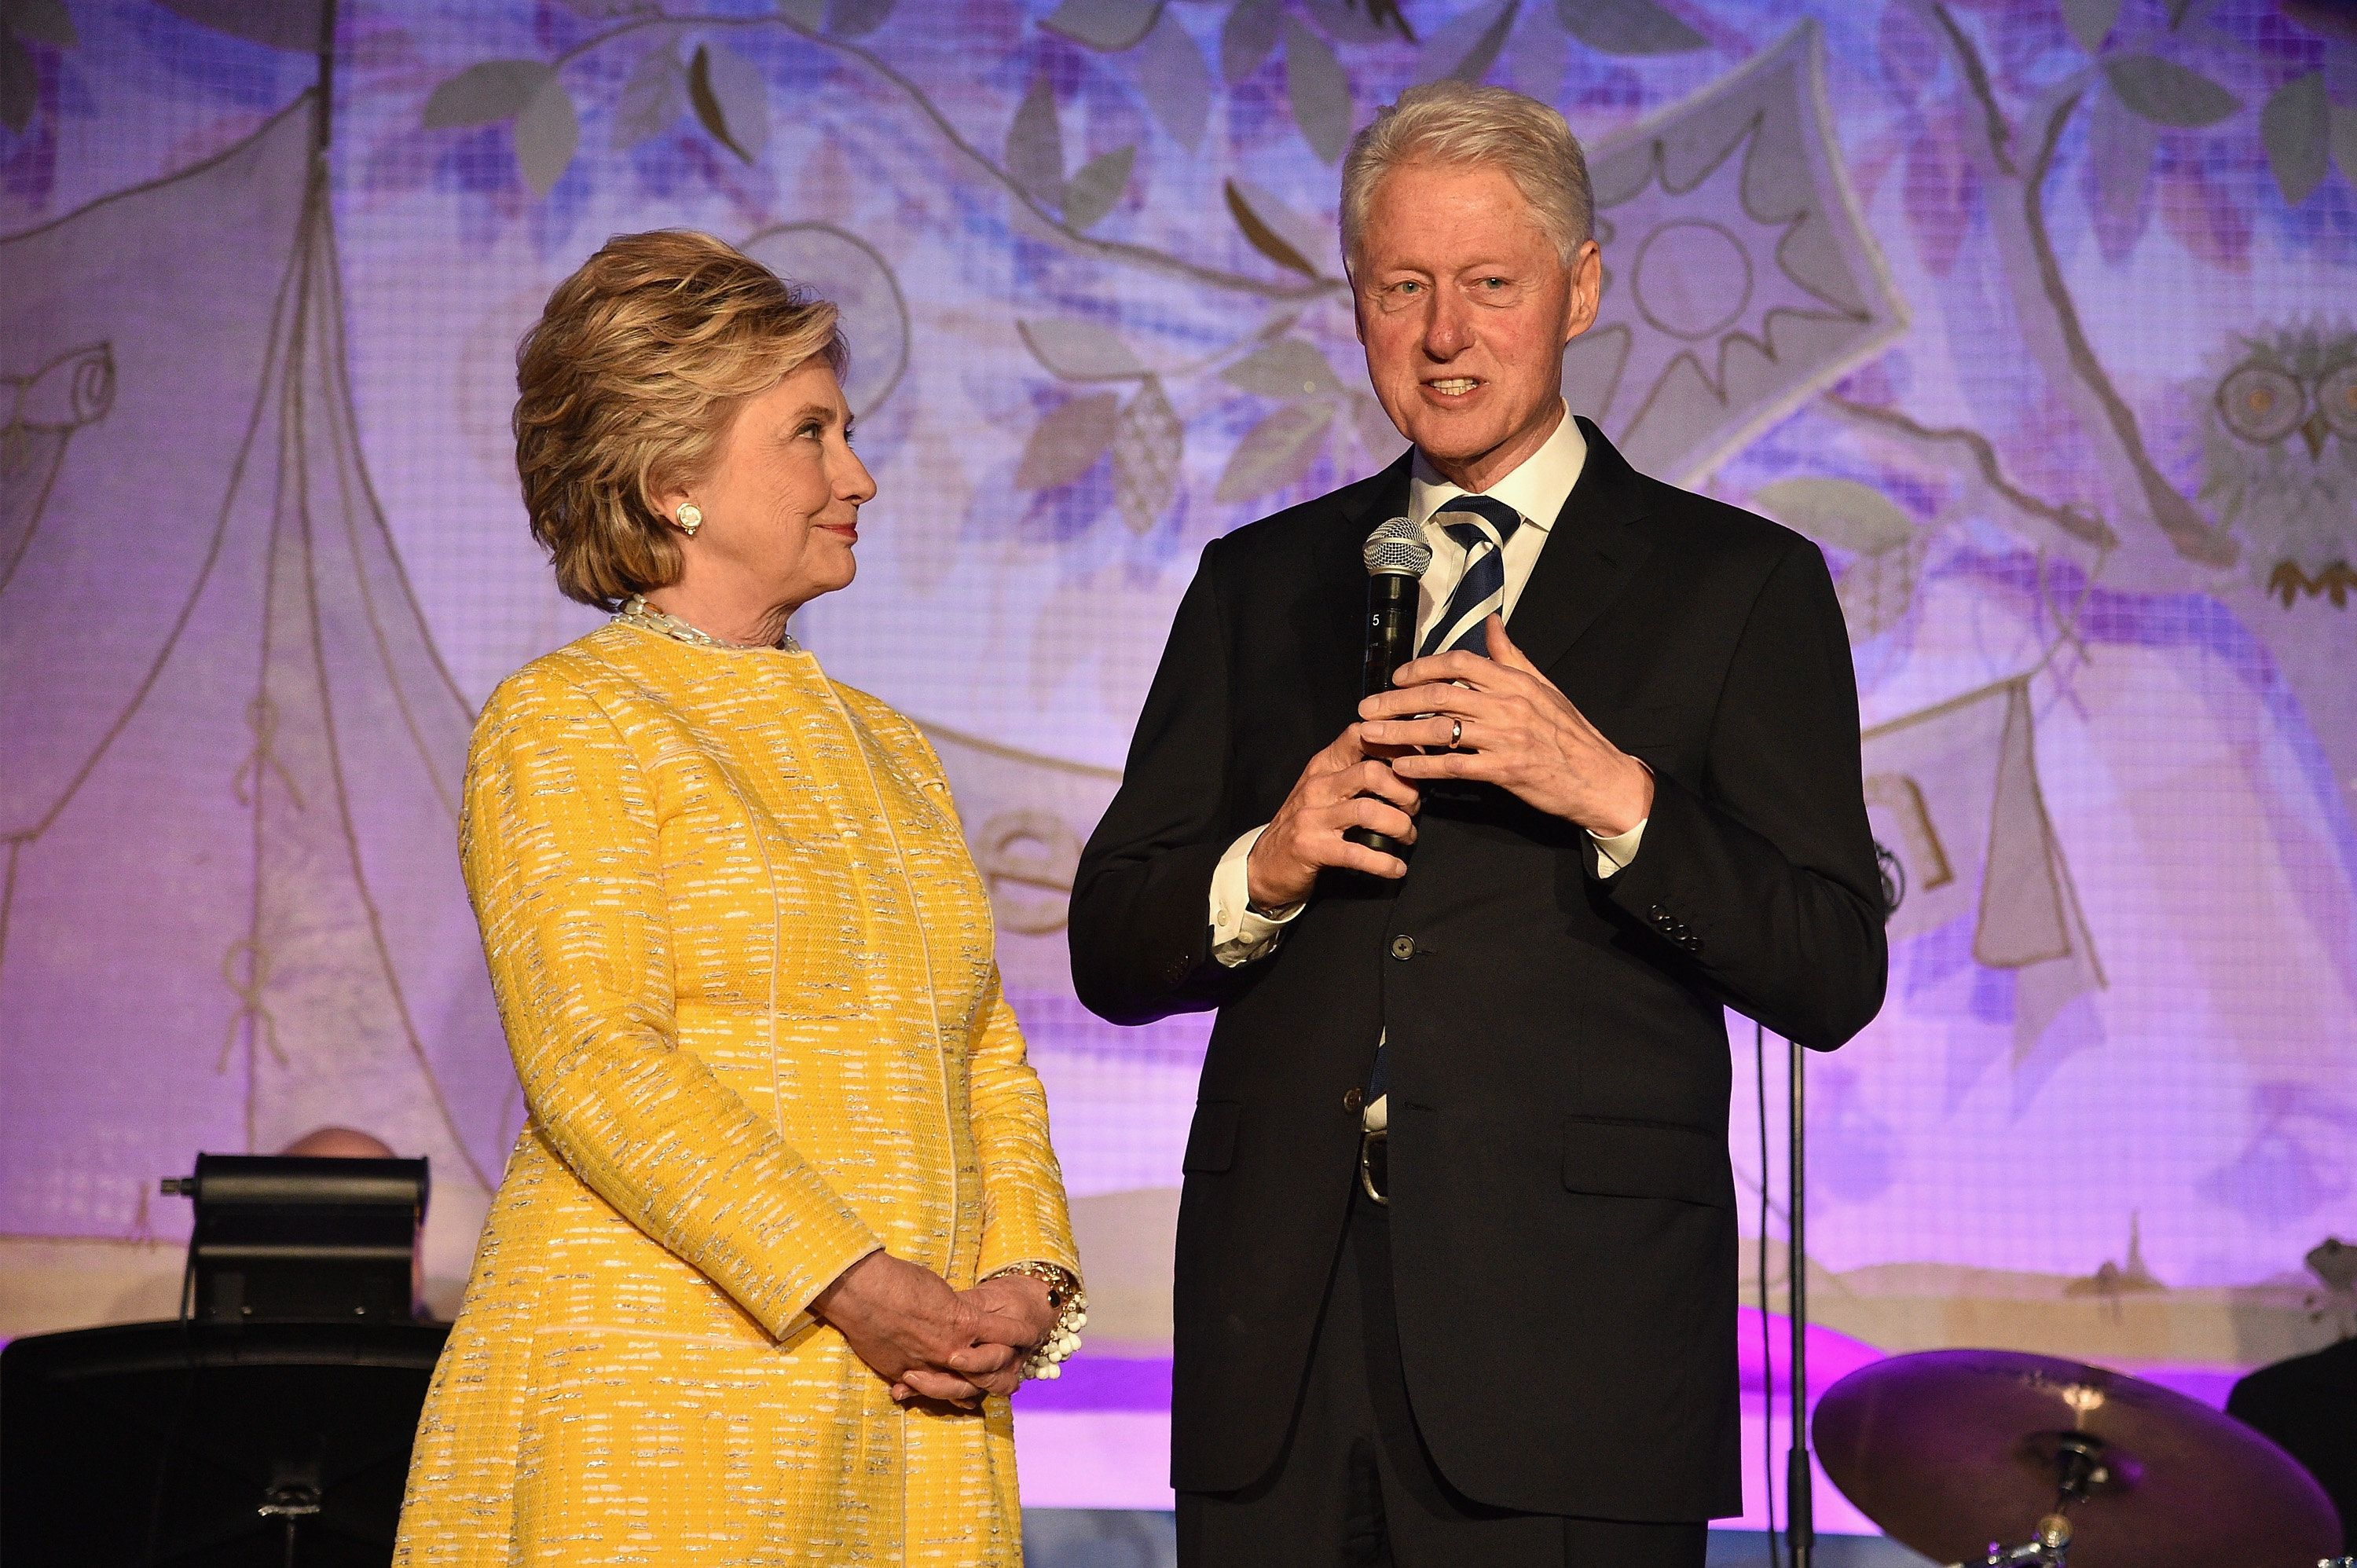 FBI Probes Clinton Foundation over Corruption Claim